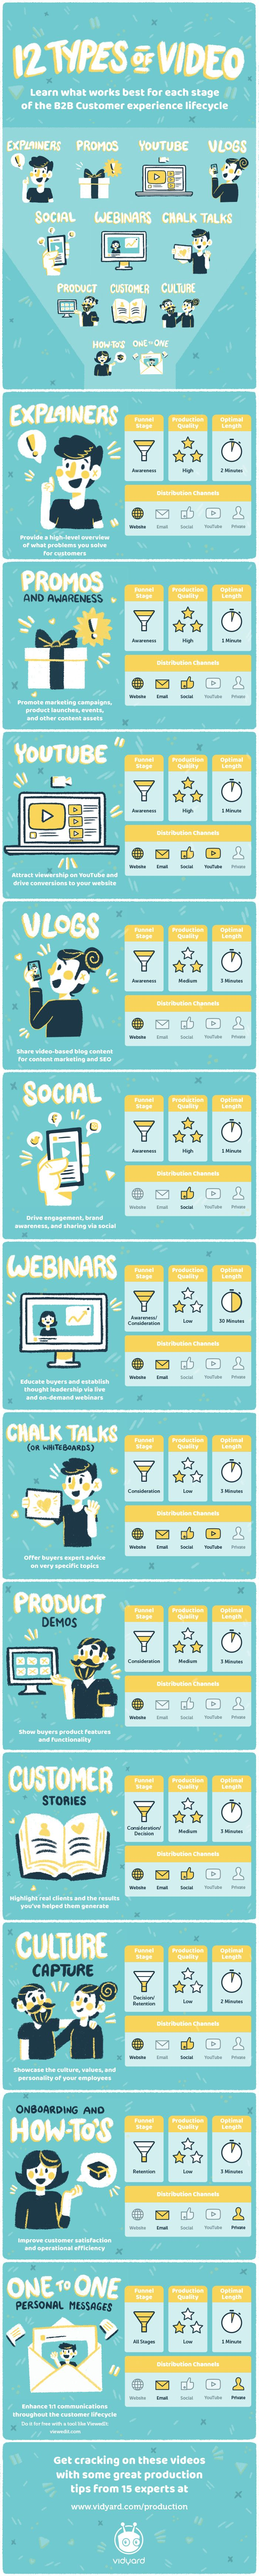 12 Types Of Video #Infographic #Business #Video